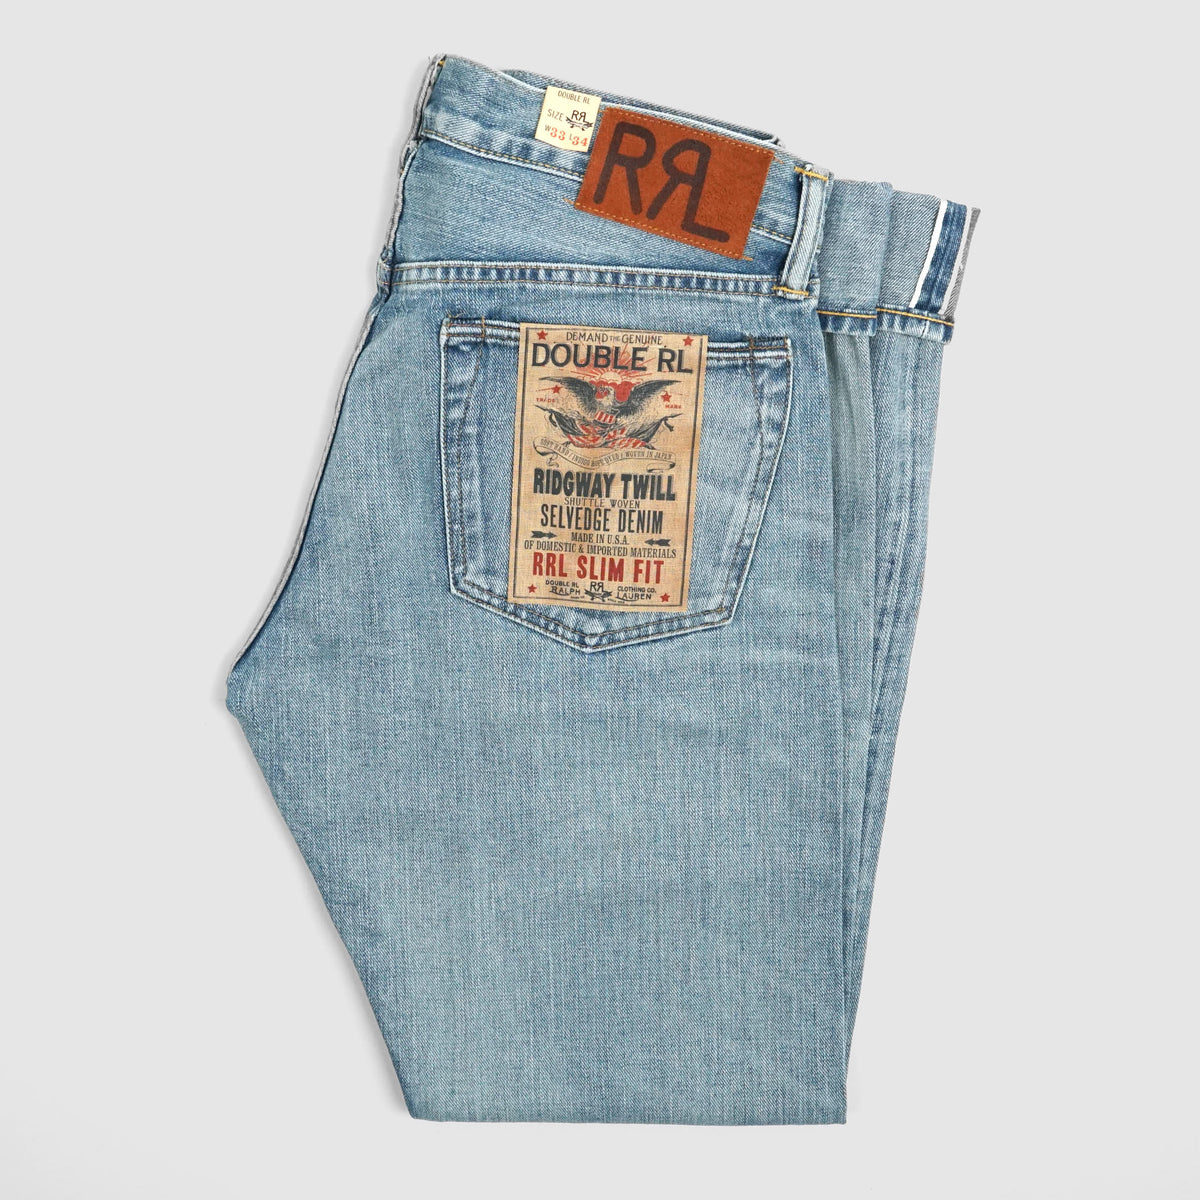 Double RL Heavy Washed Denim  Slim Fit Selvage Jeans